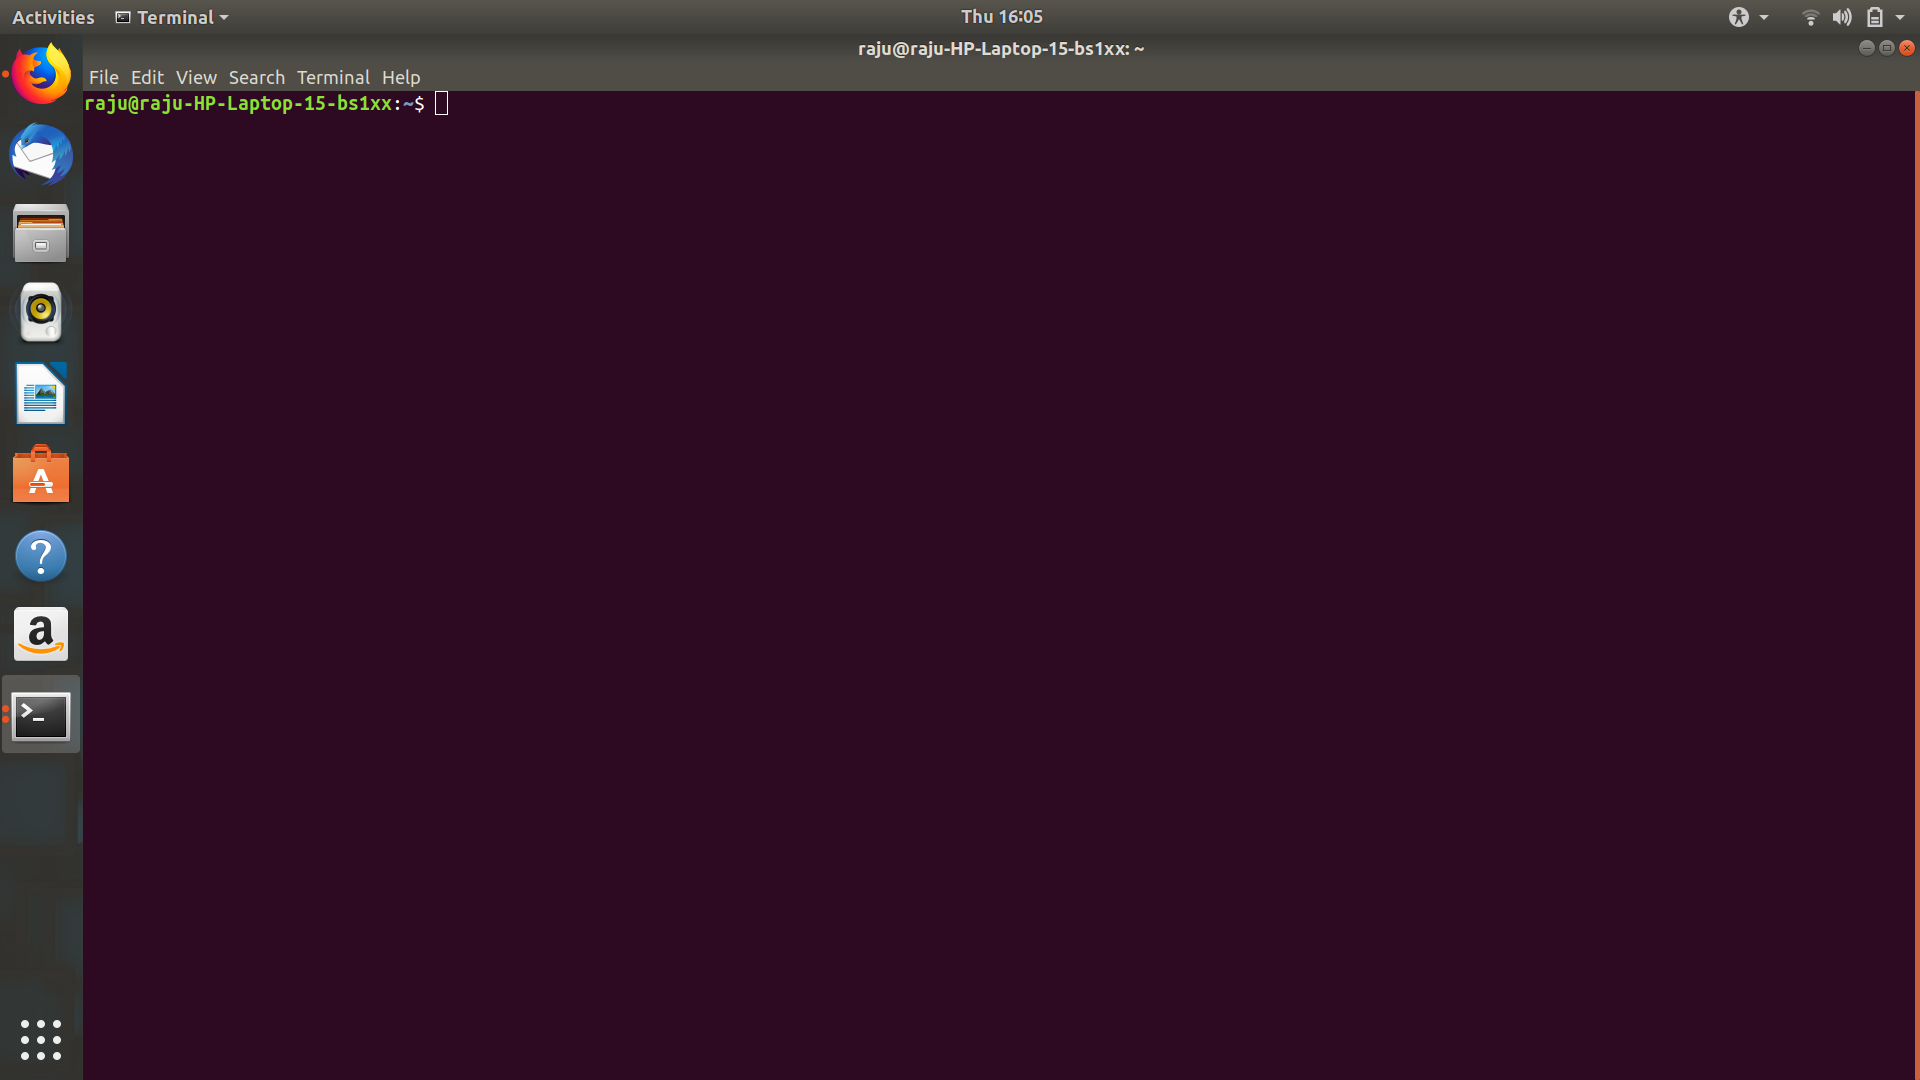 Linux Operating System | CLI (Command Line Interface) and GUI